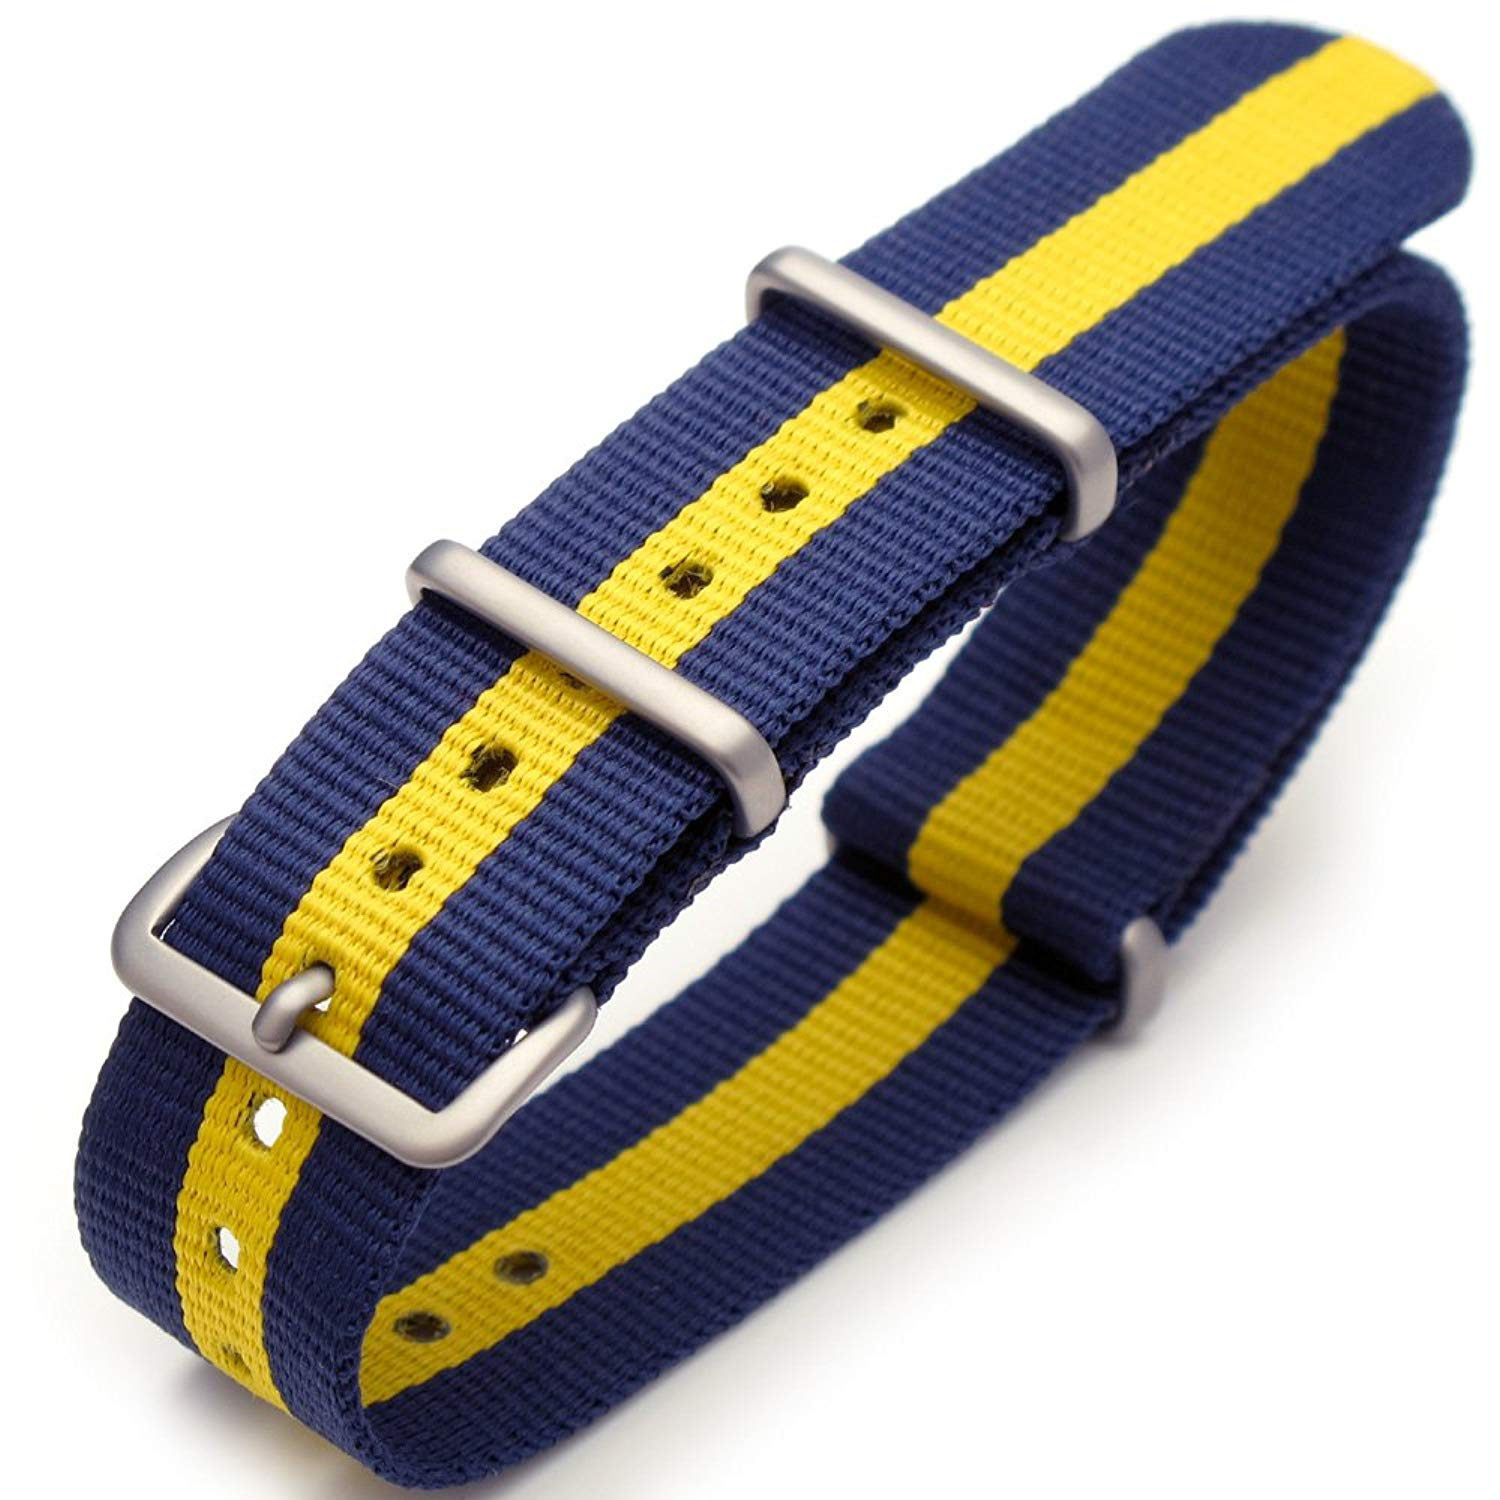 457884d0018 Get Quotations · 20mm G10 Nato James Bond Nylon Watch Strap Brushed Buckle  - Blue   Yellow